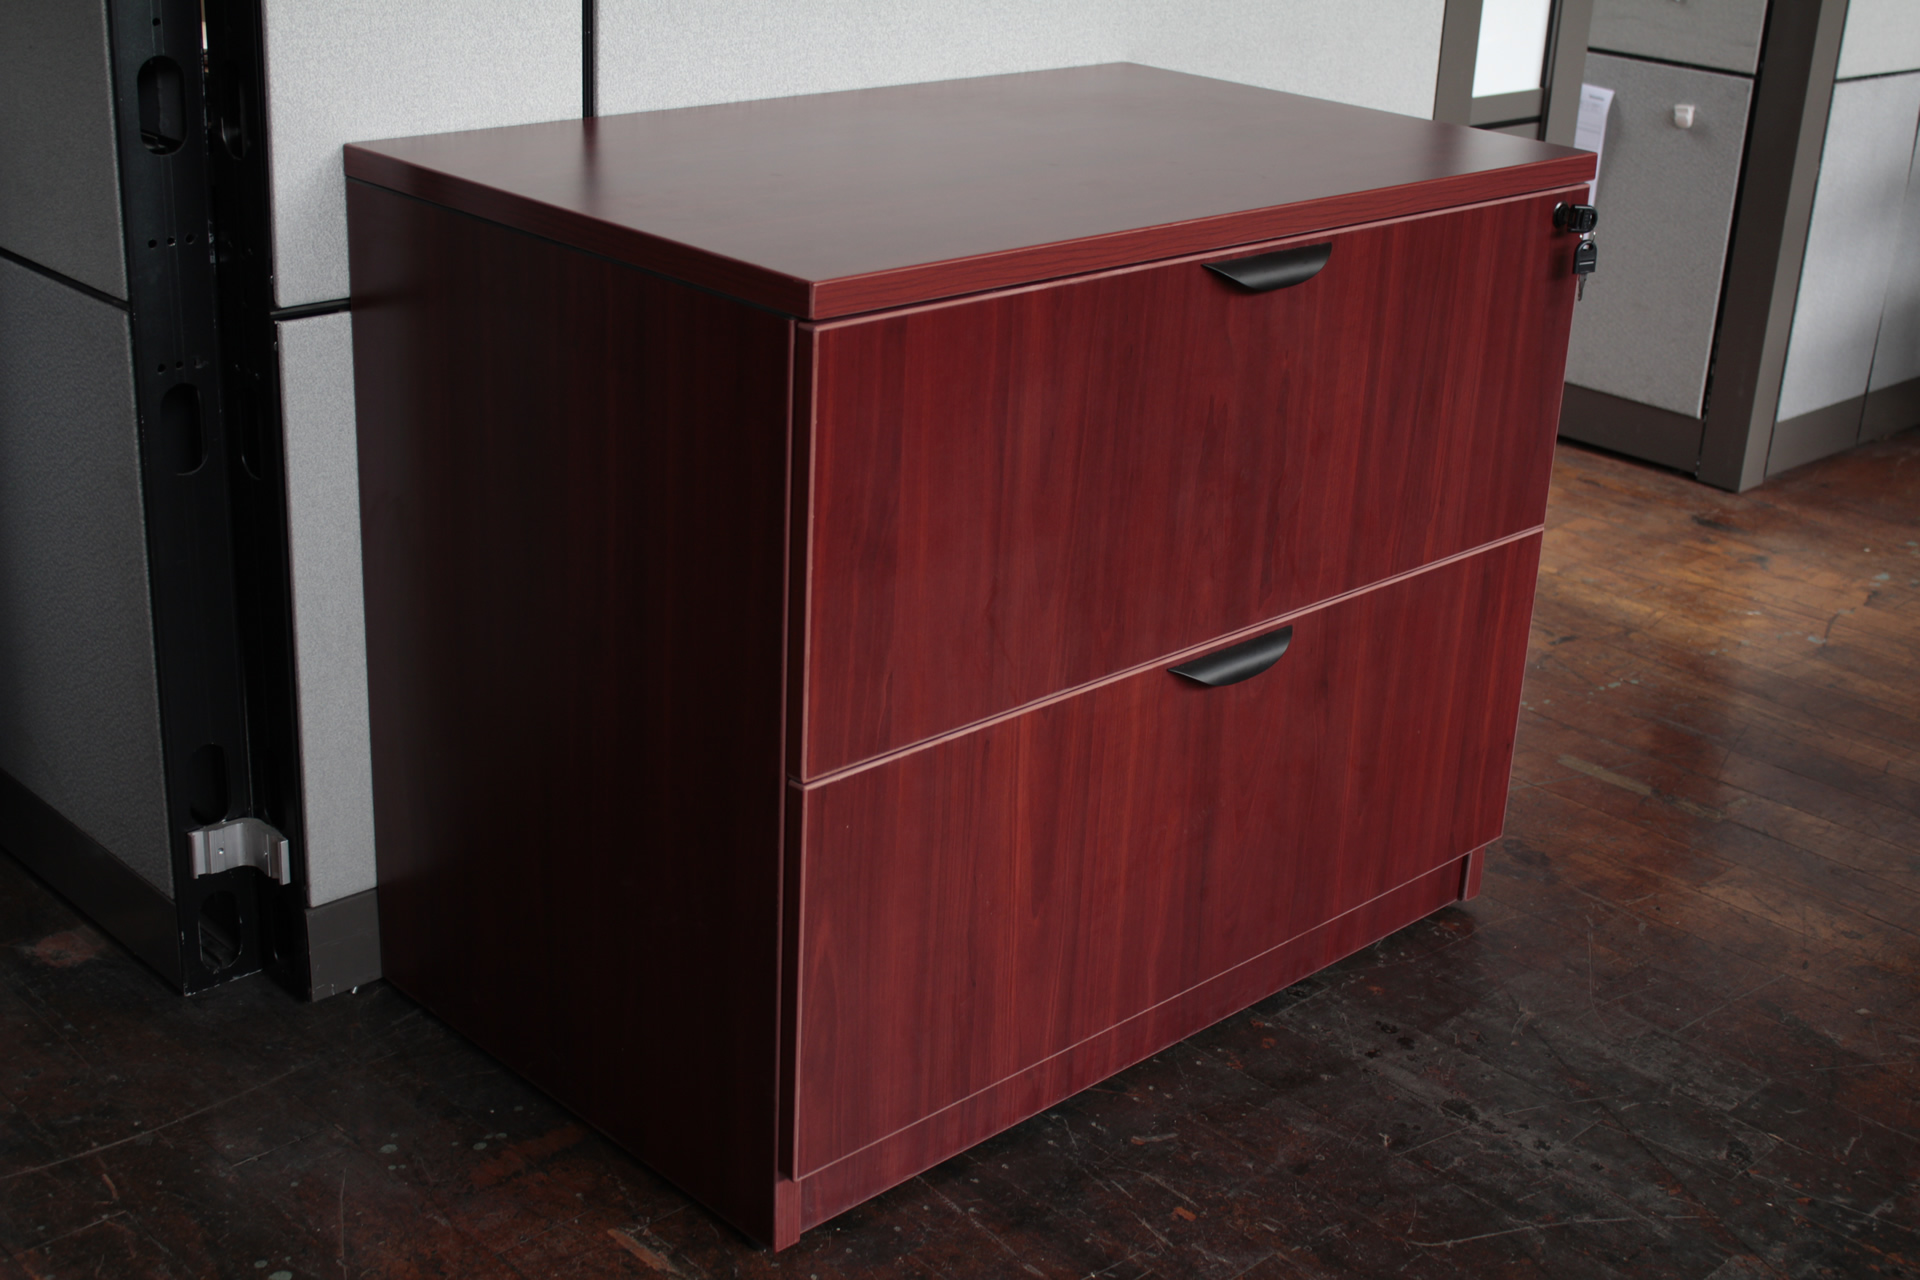 peartreeofficefurniture_peartreeofficefurniture_f2.jpg